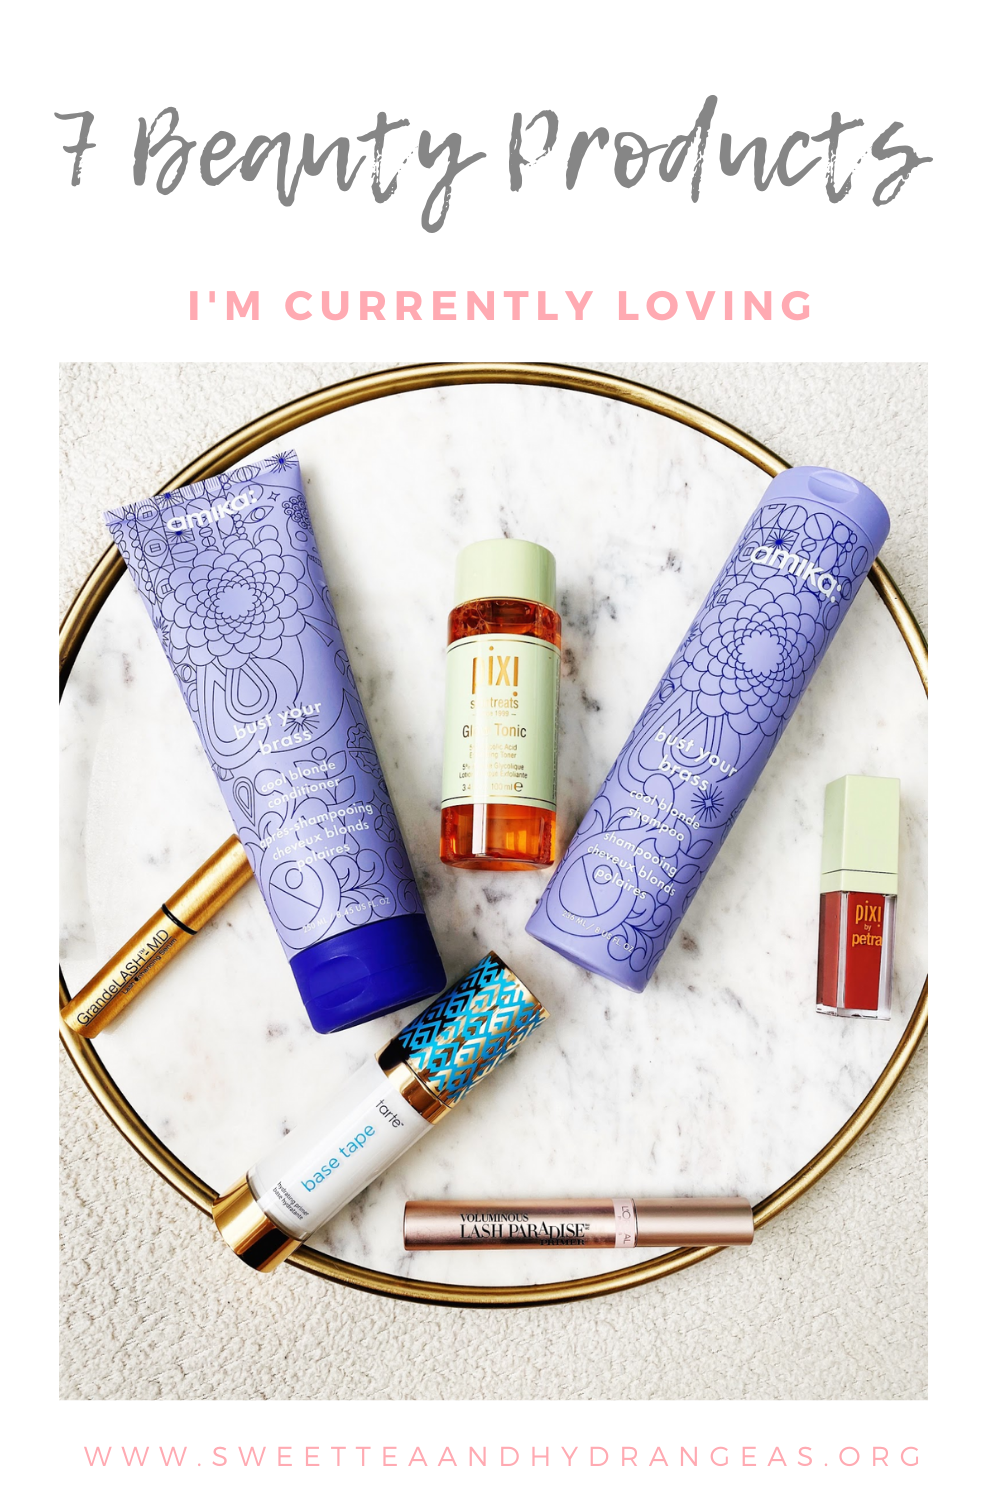 Sweet Tea & Hydrangeas 7 Beauty Products I'm Currently Loving